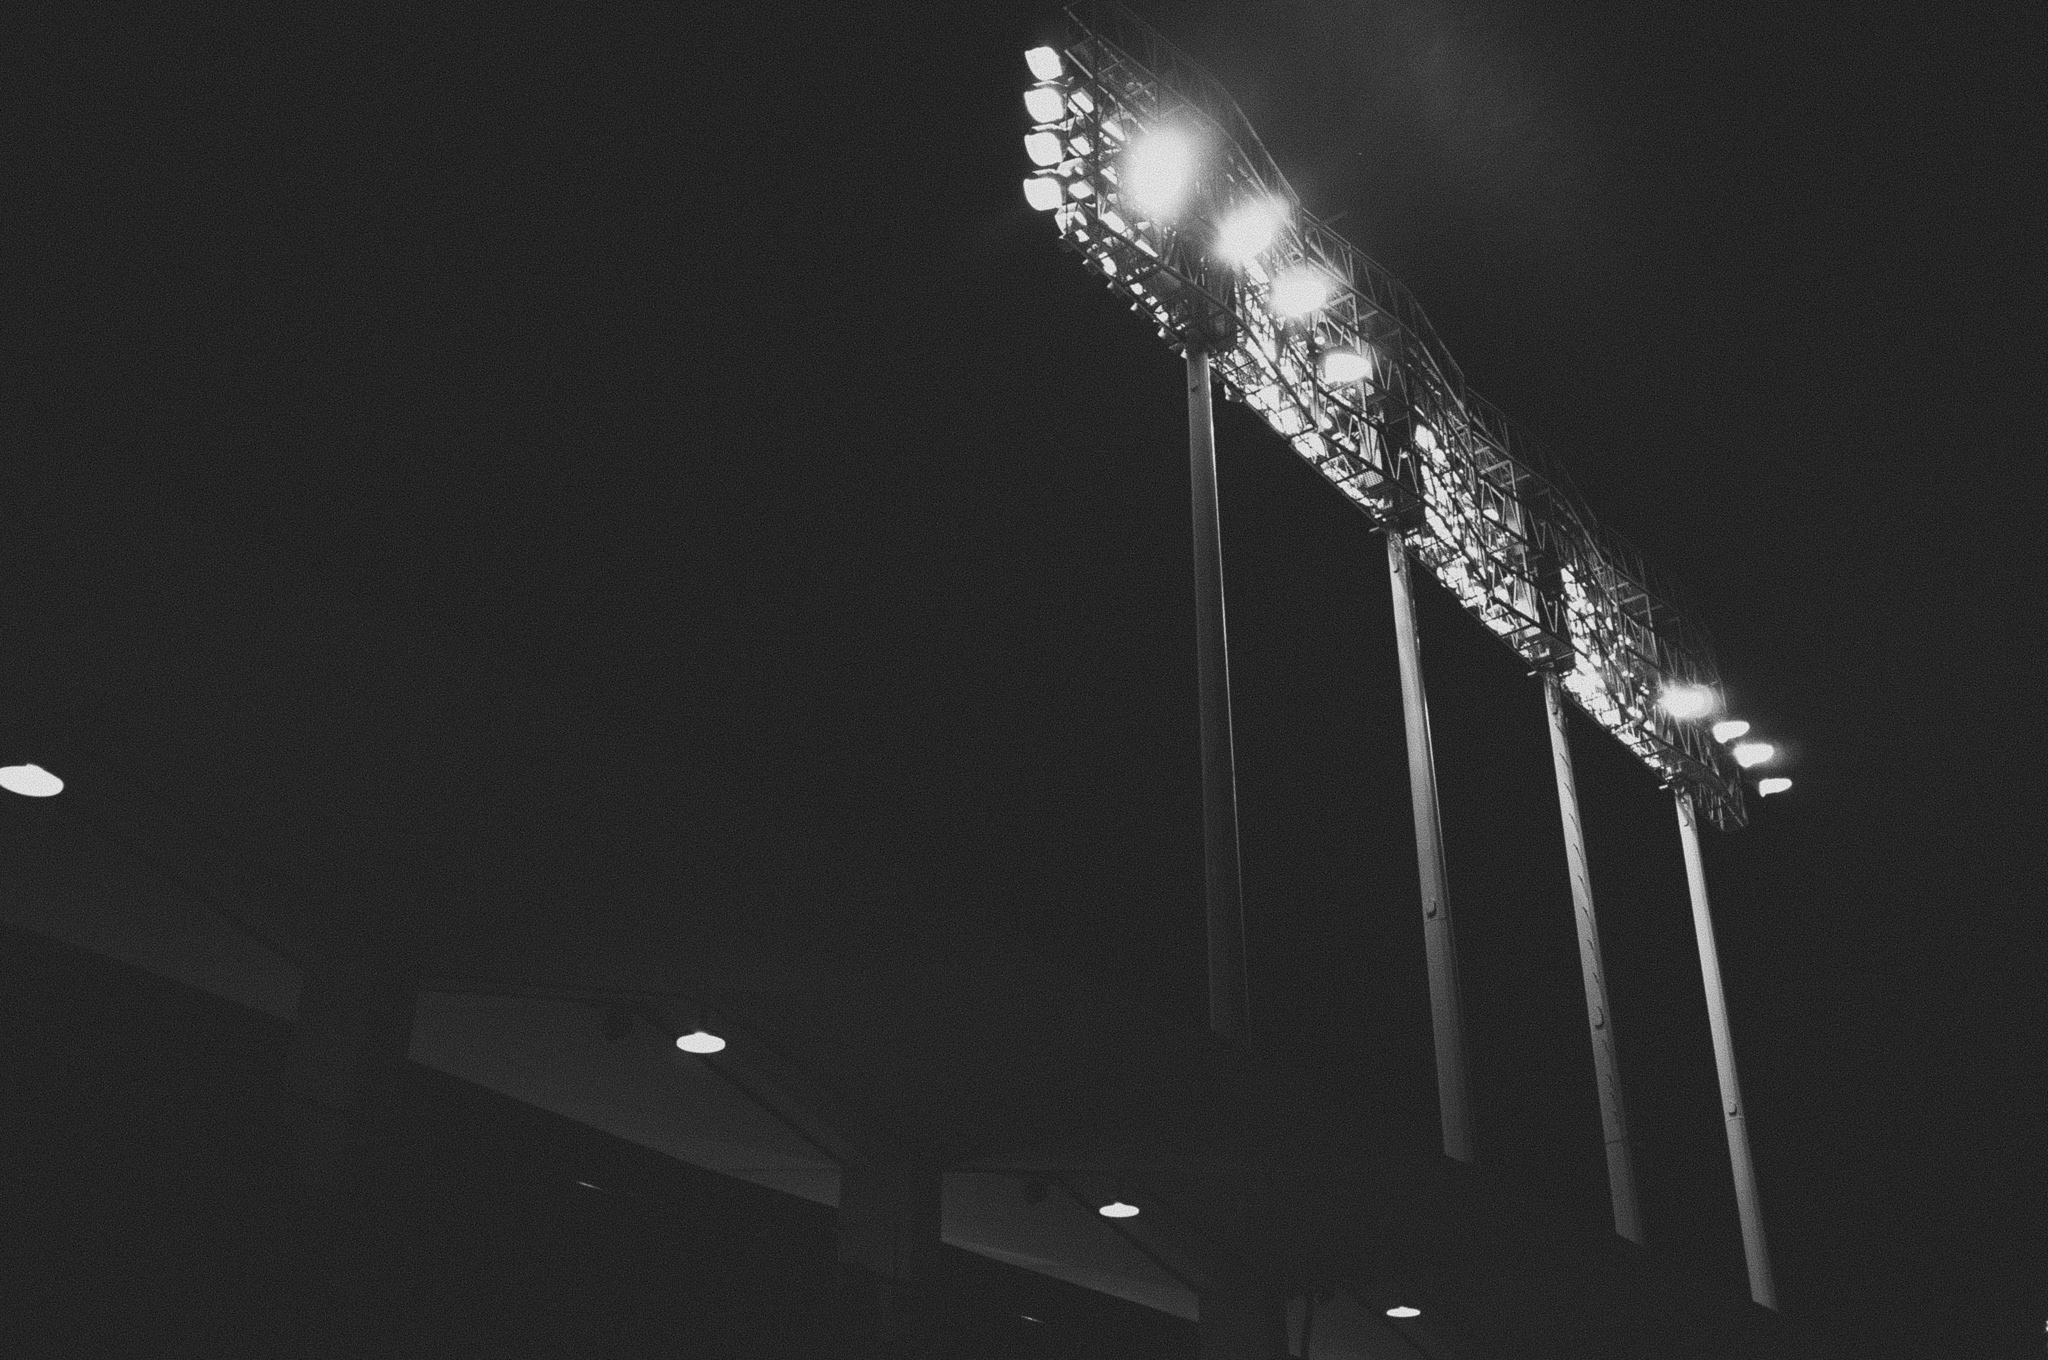 20130830_DodgerStadium_03.jpg